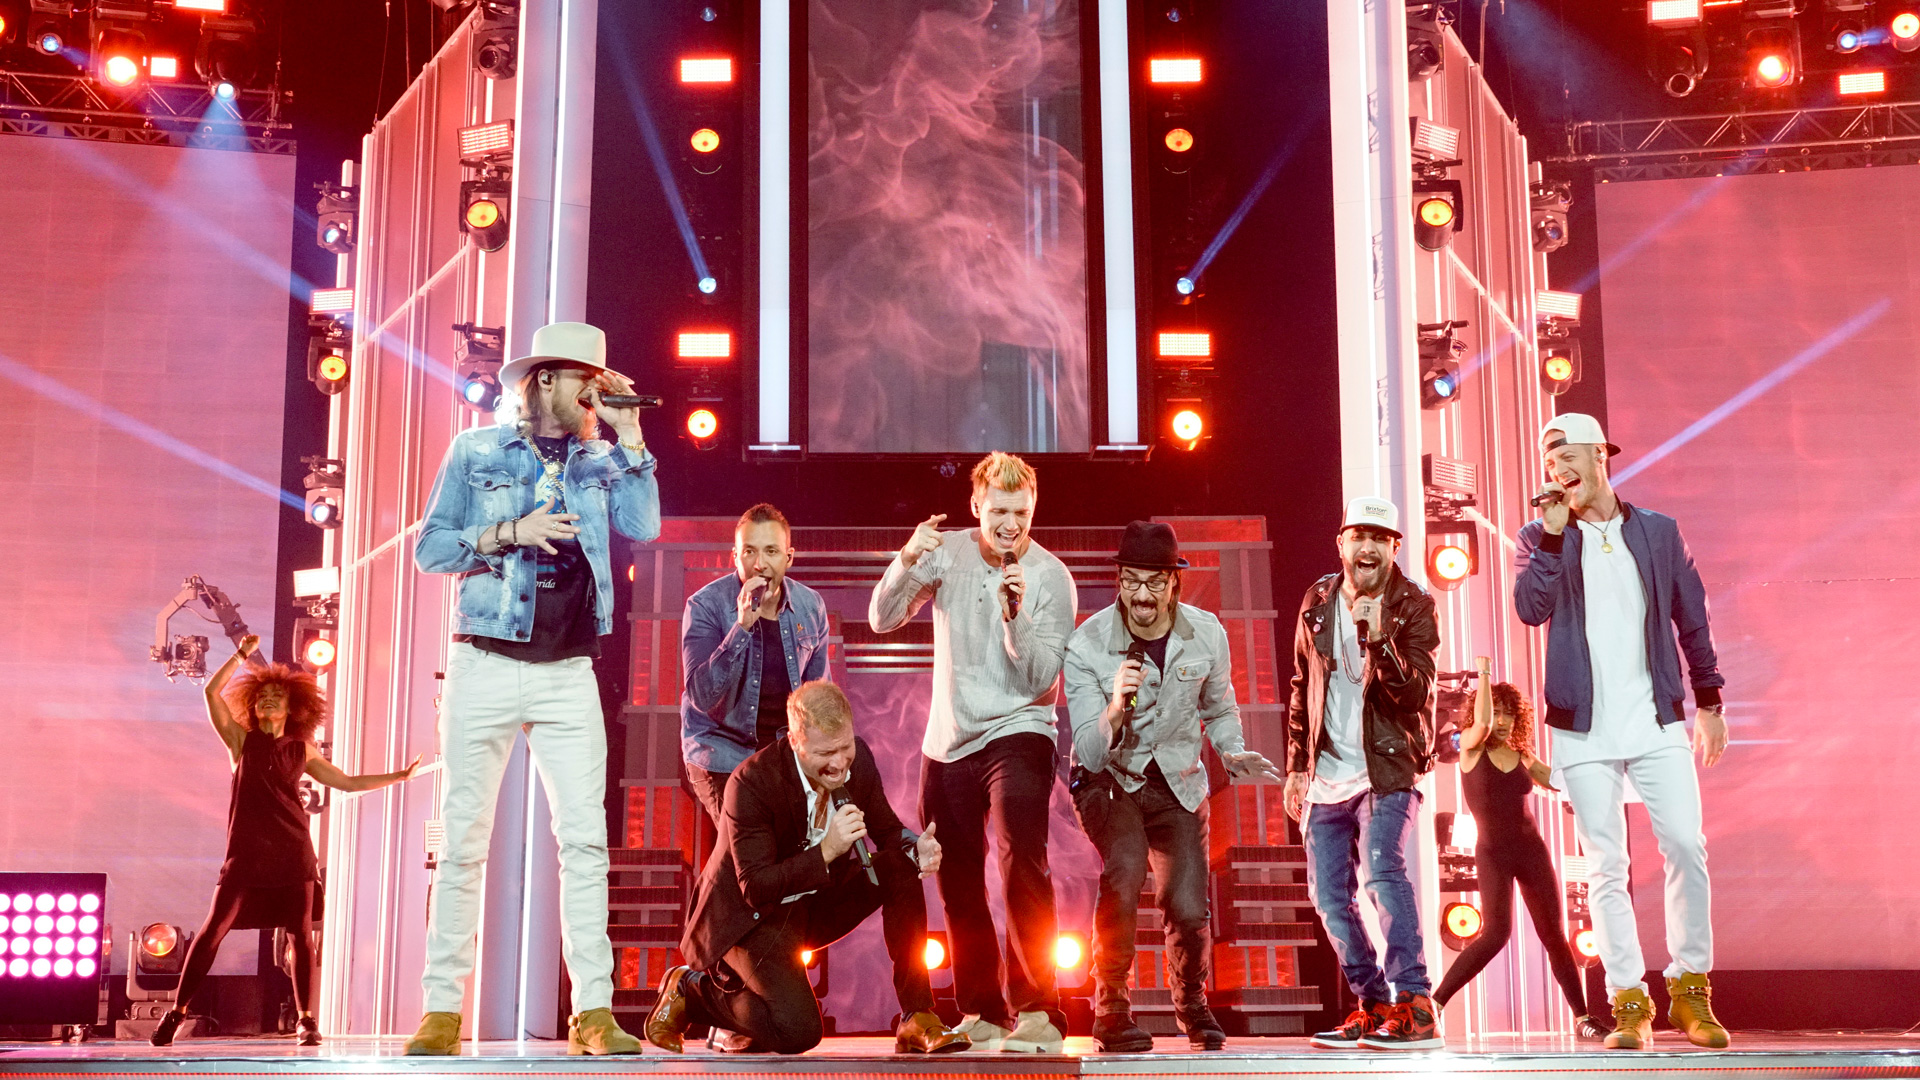 Florida Georgia Line and Backstreet Boys join in harmony on the 52nd ACM Awards stage.